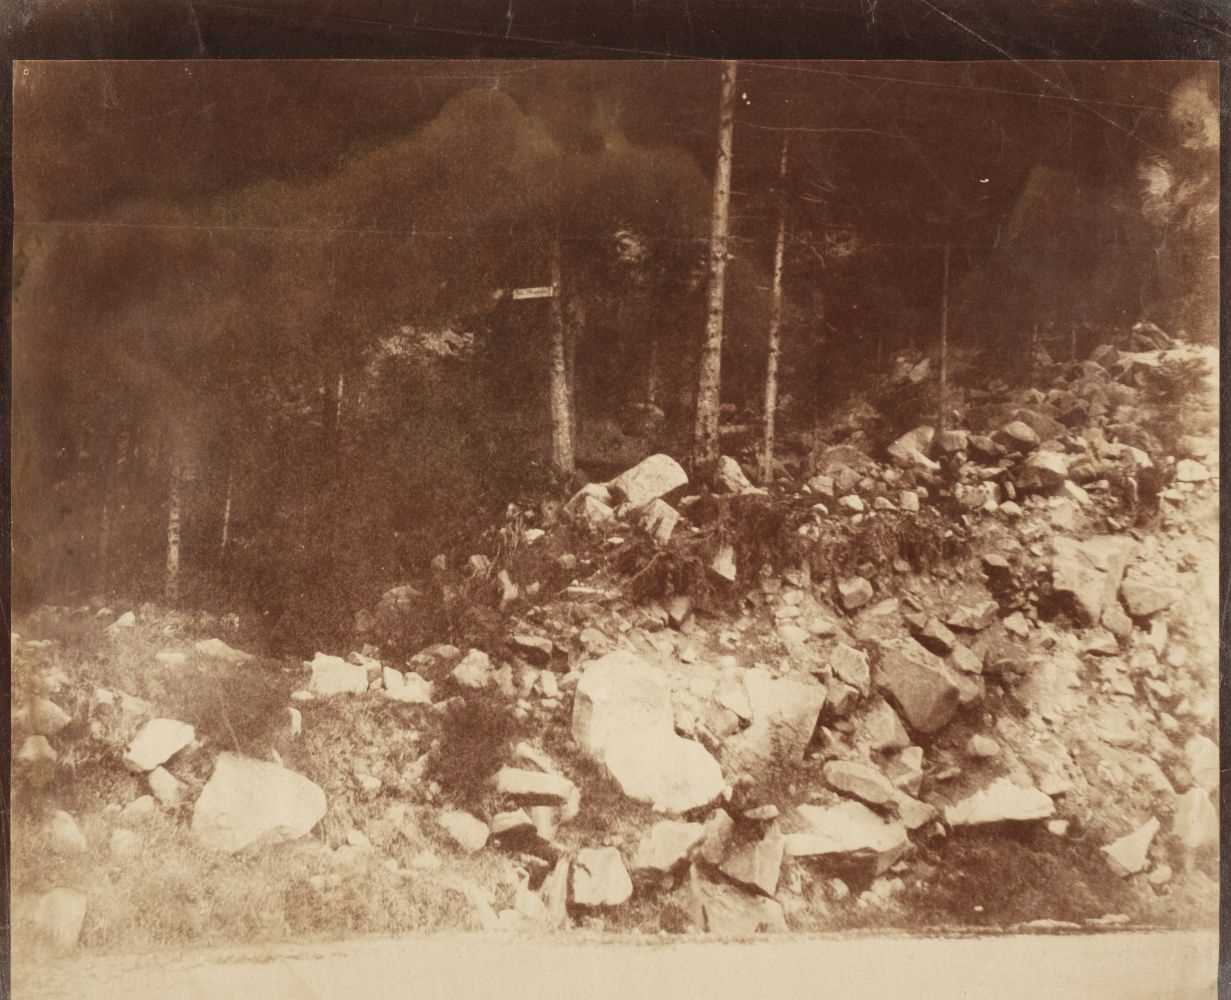 Lot 6-Dijon (V., 19th century). Mountainous woodlands in France or Germany, c. 1854